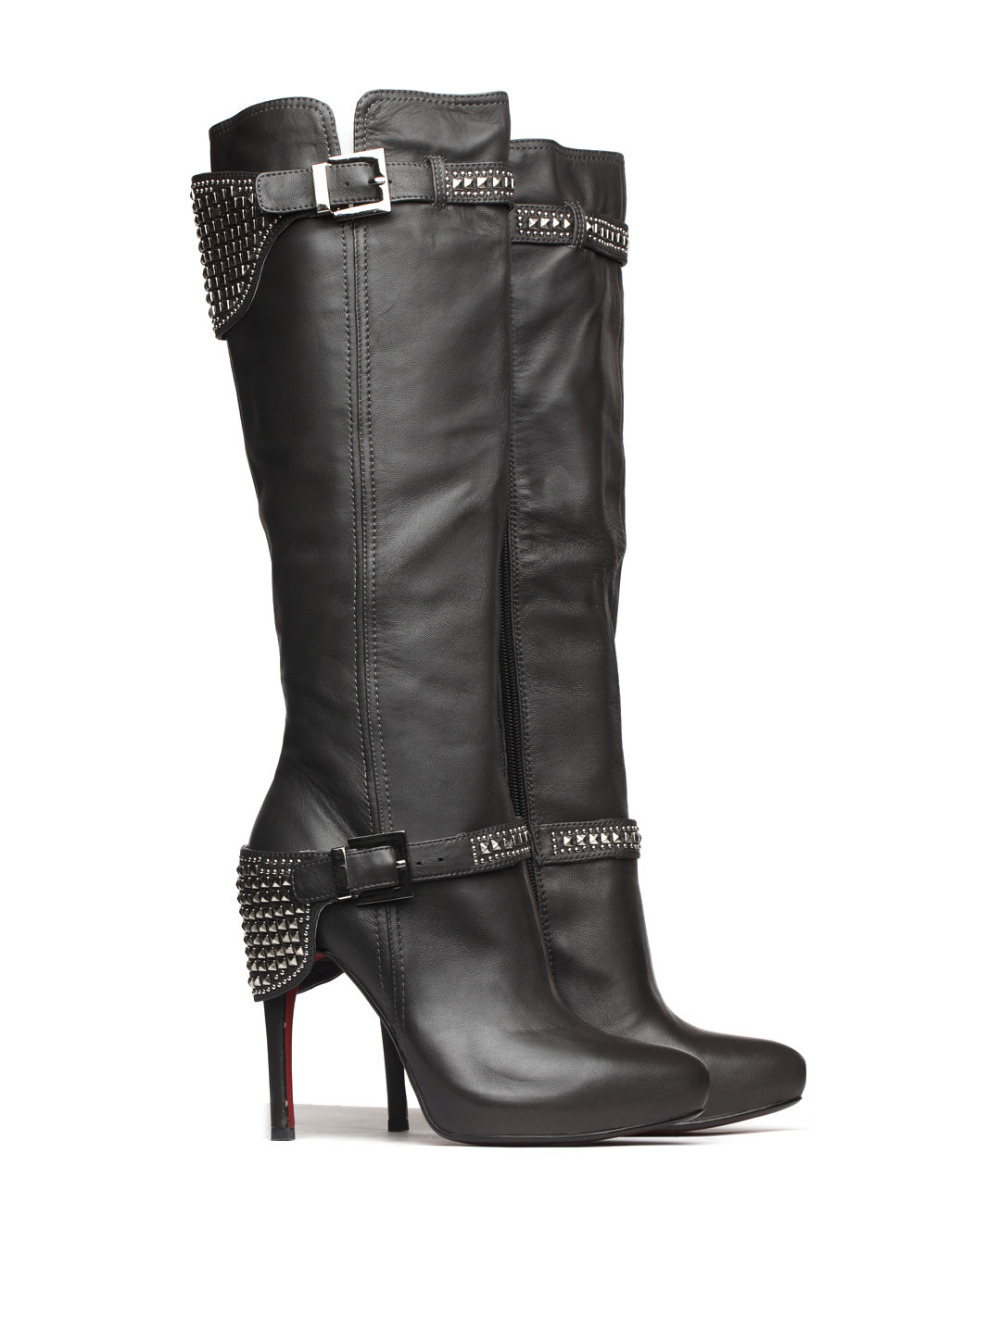 Basic Editions Autumn Fall Women Genuine Leather Thin High Heel Zipper and Buckle Rivets Decoration Long Boots - A16-1521 JU232 basic editions women dark grey suede leather spike high heel chain accessories winter long boots 1105 1422 aj91